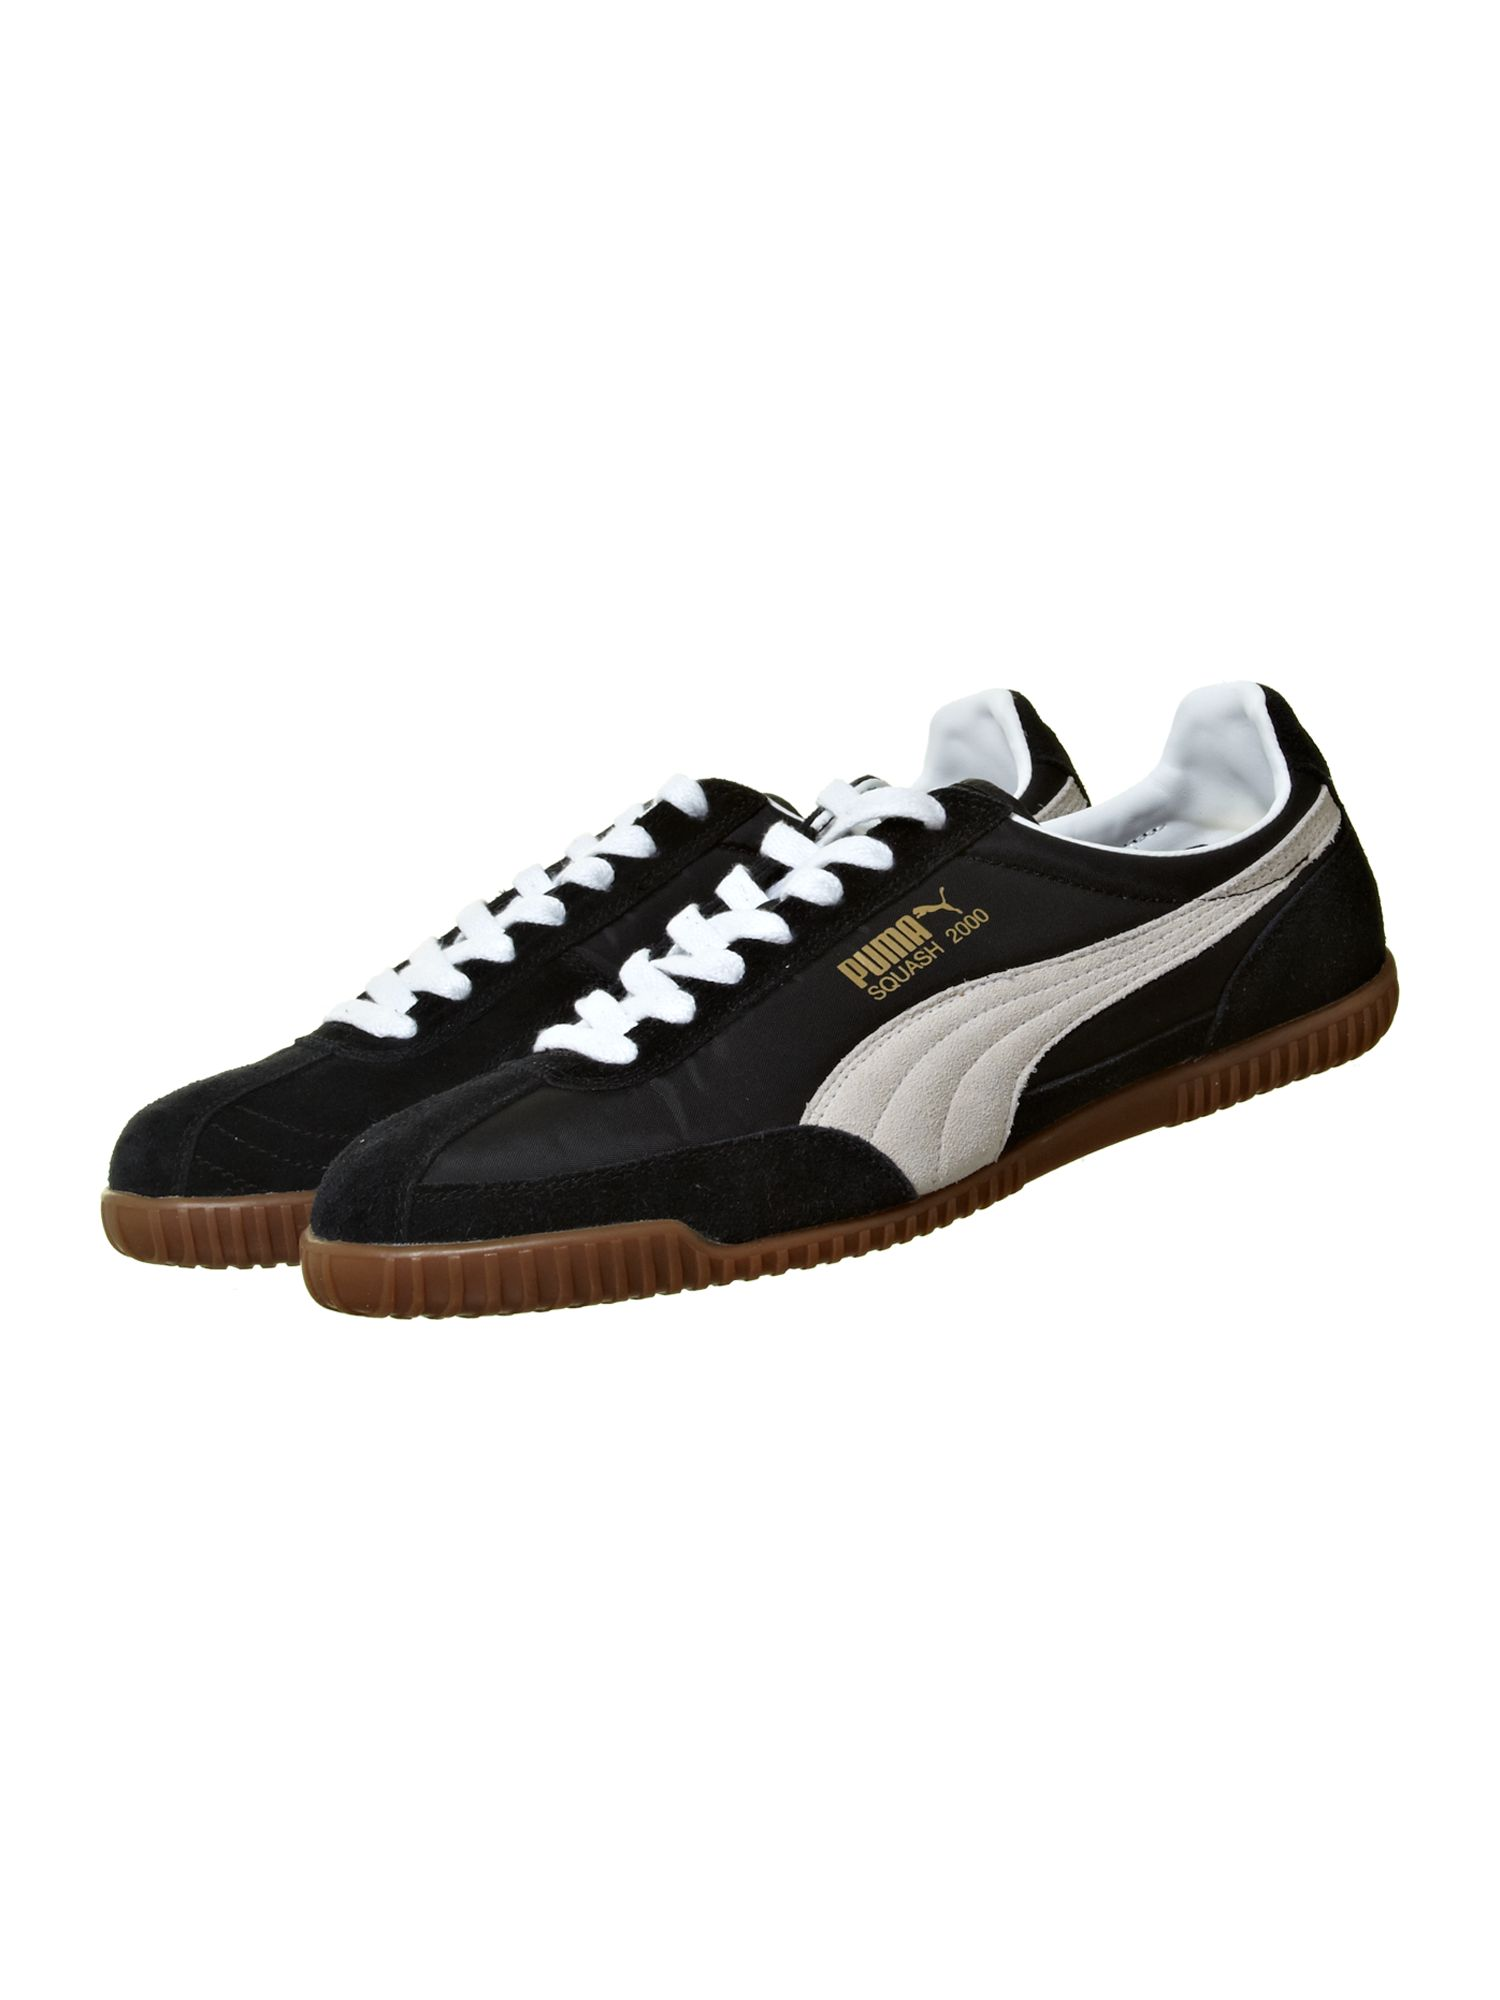 Low top squash 2000 trainer